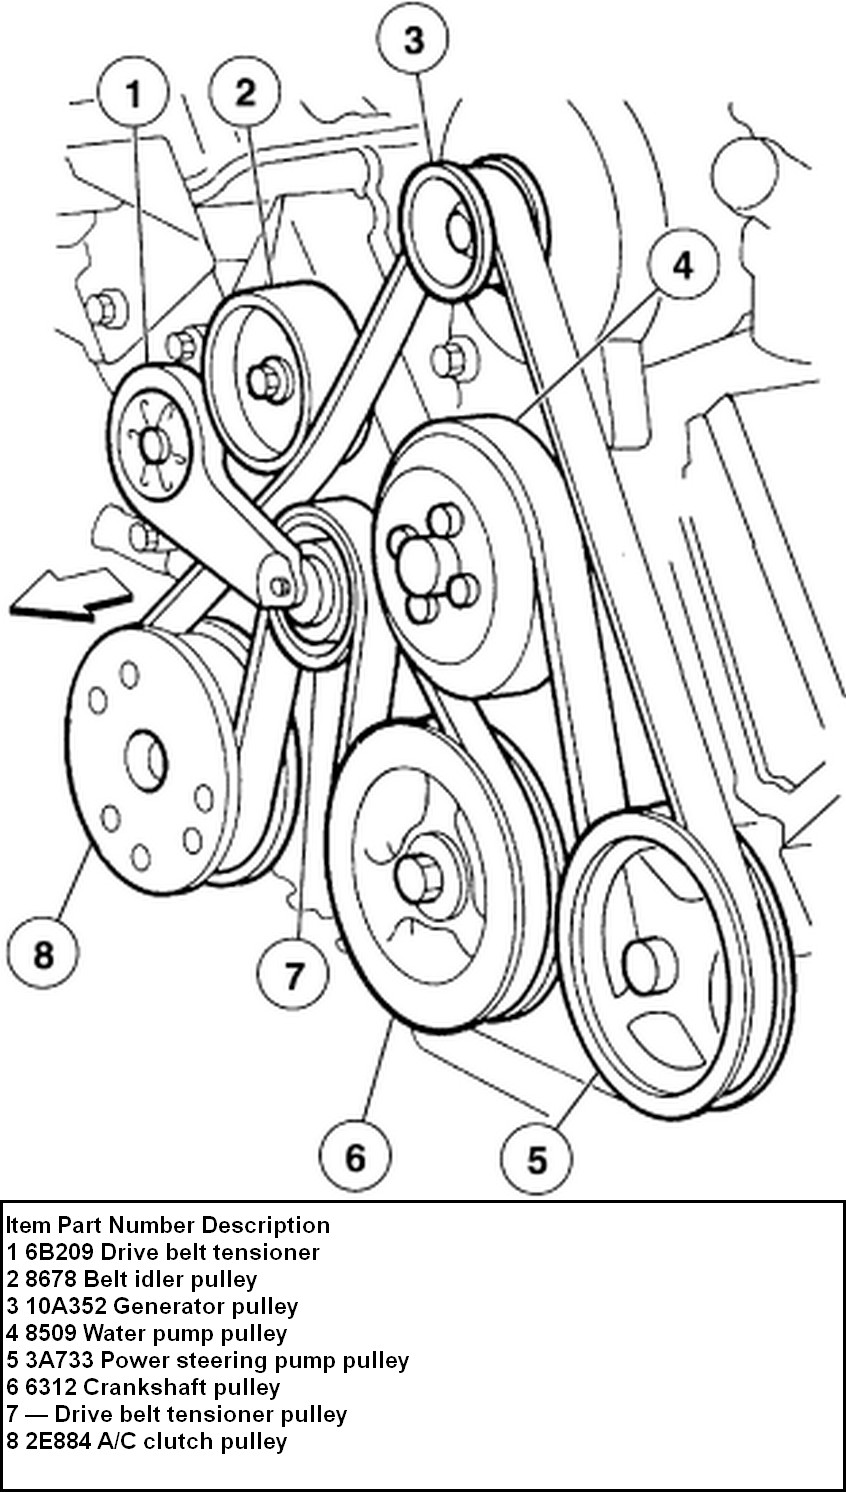 2000 Ford Expedition Engine Diagram Wiring Diagram Frankmotors Es